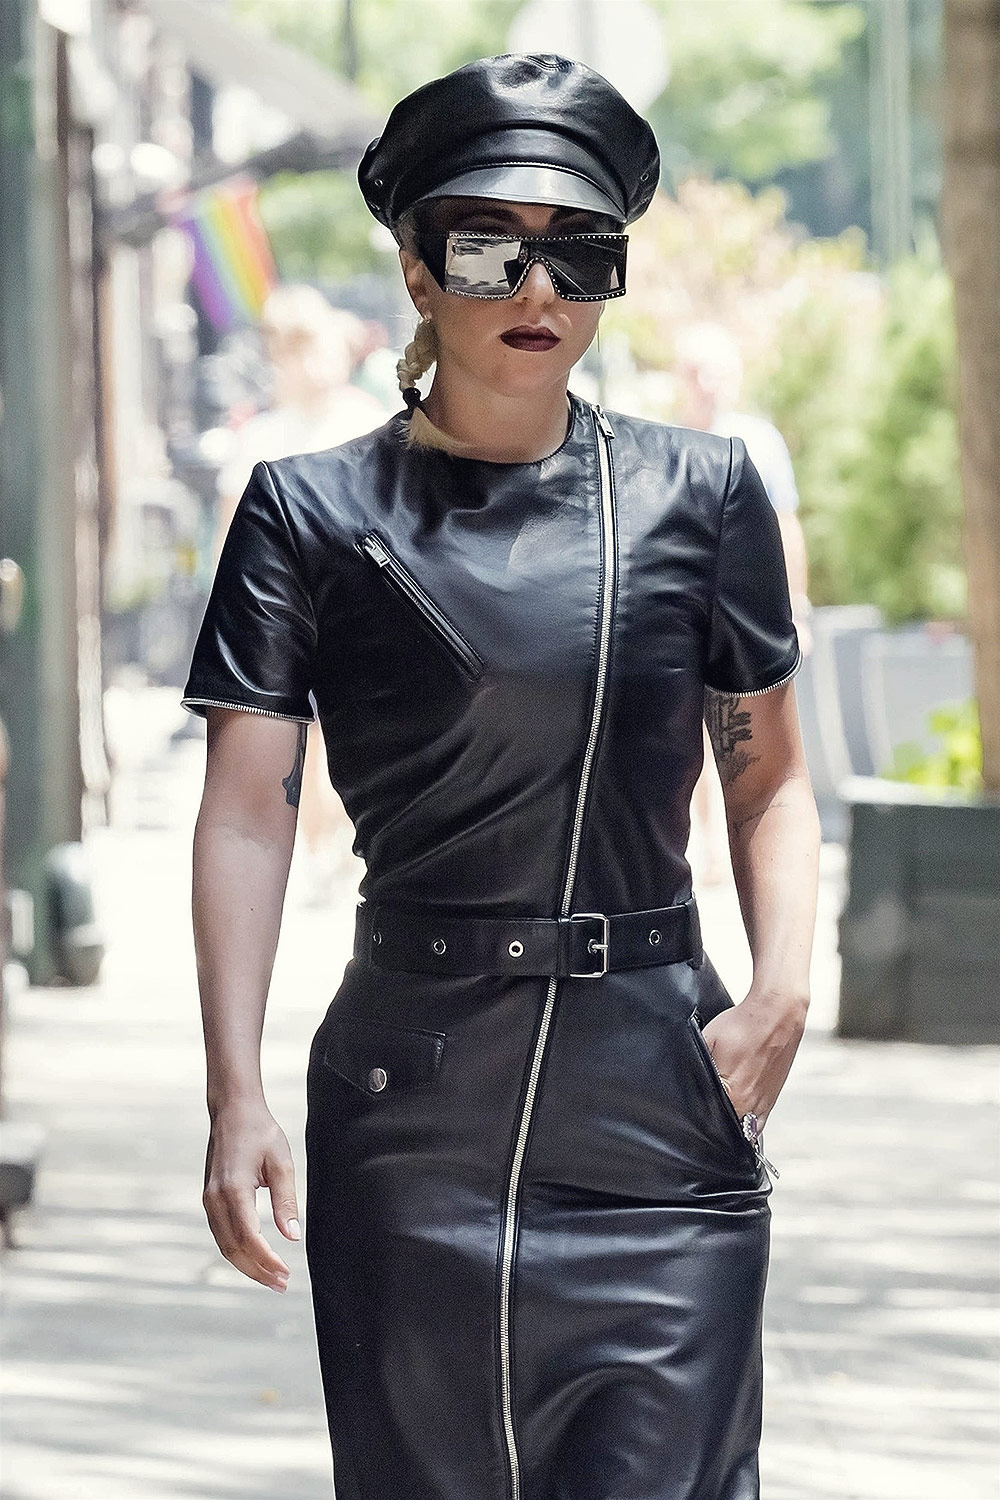 Lady Gaga heading to a studio